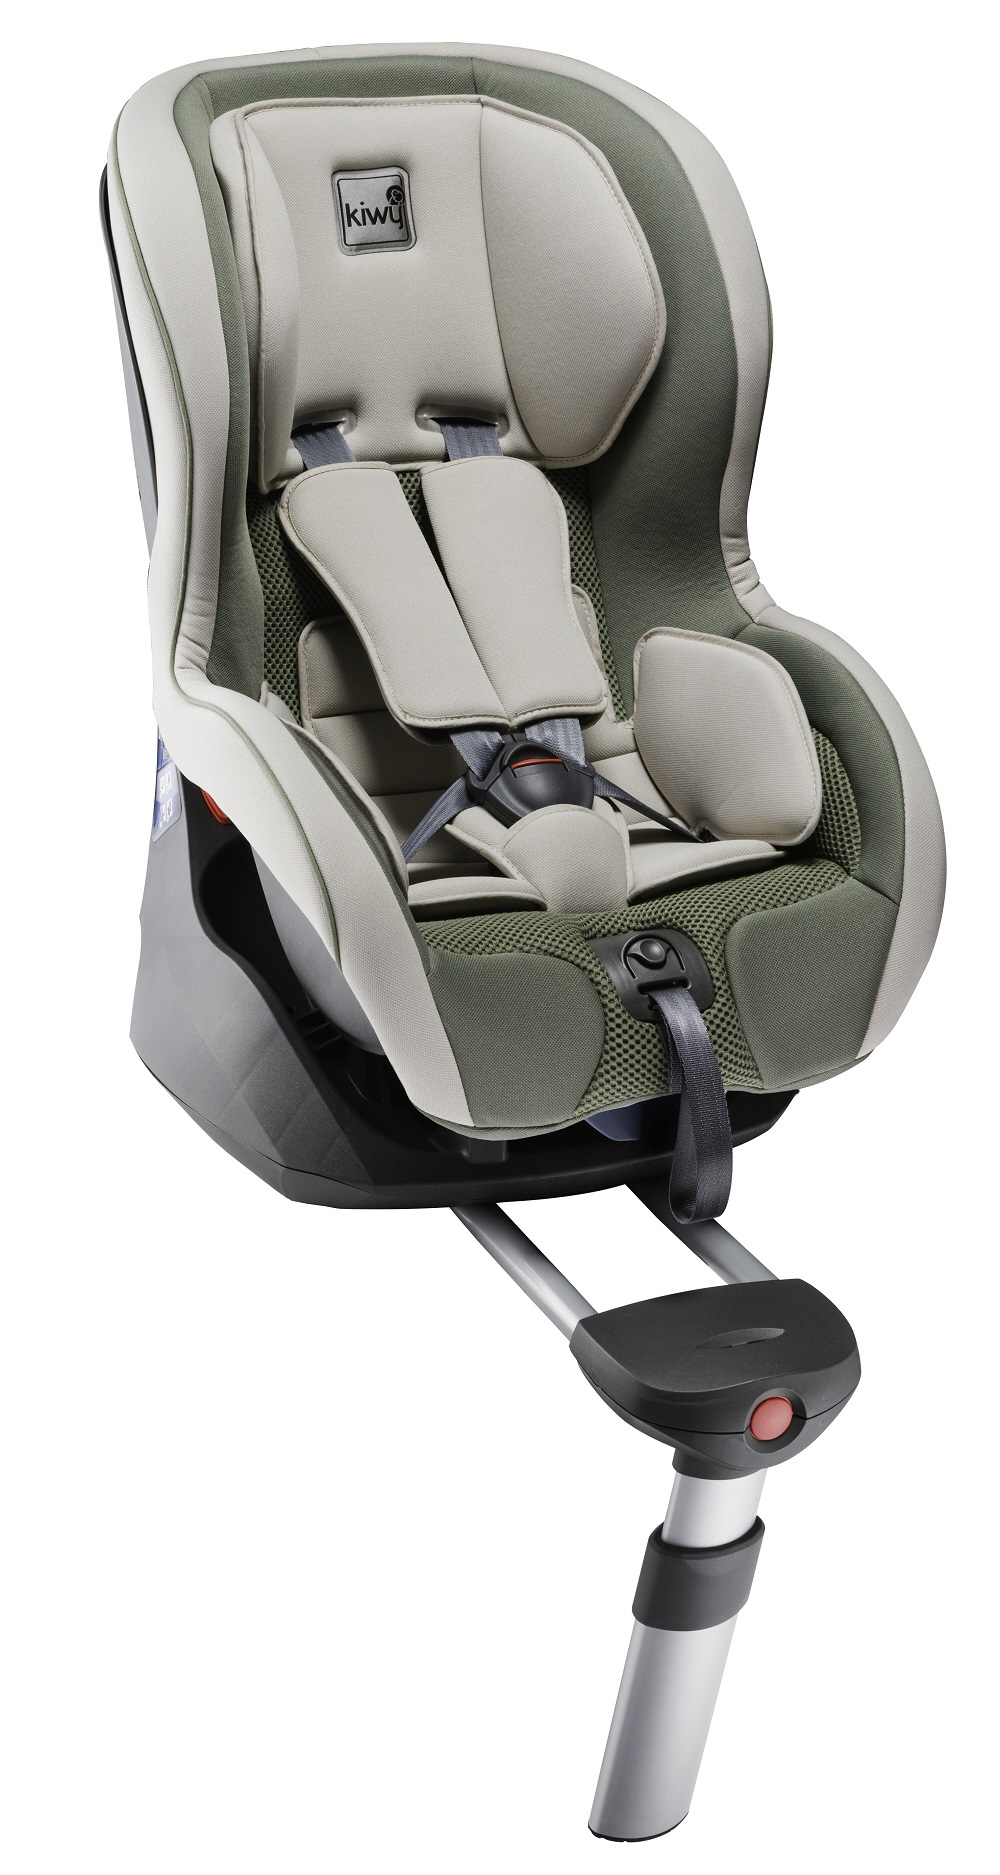 kiwy kindersitz spf1 mit isofix online kaufen bei kidsroom kindersitze kindersitze mit isofix. Black Bedroom Furniture Sets. Home Design Ideas